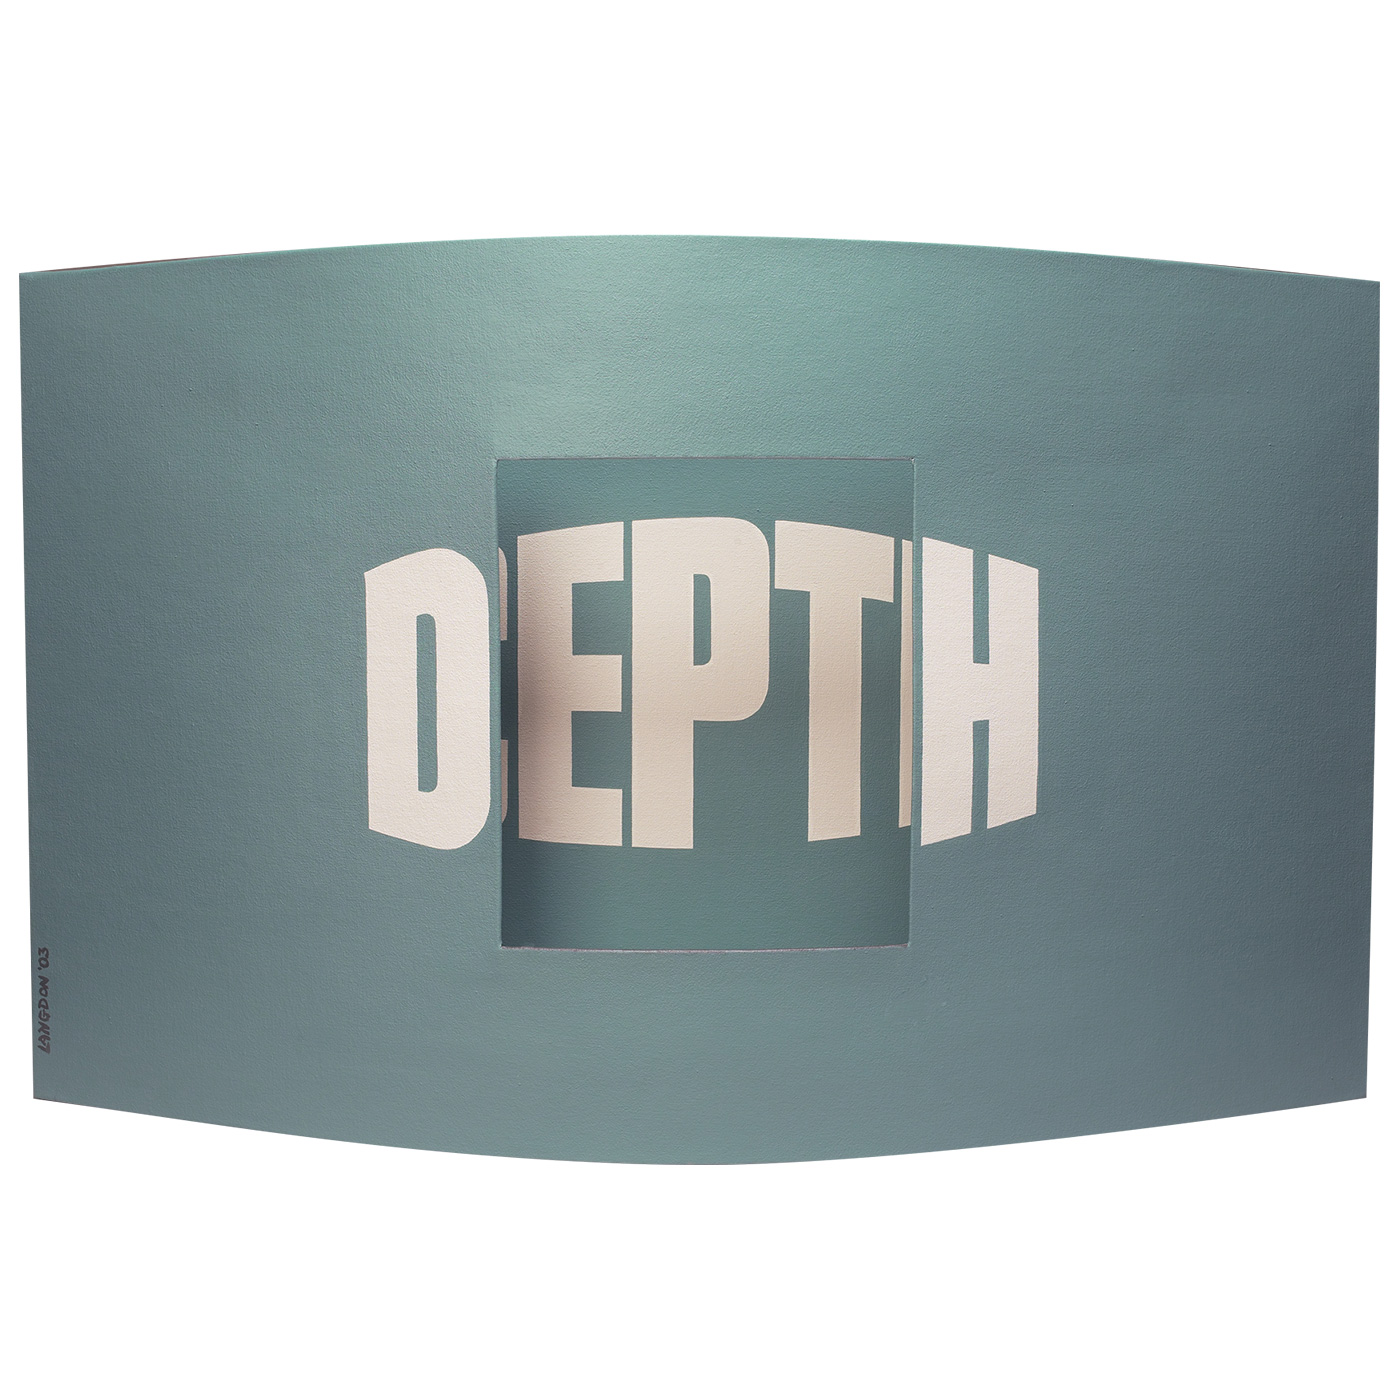 Depth-Perception_JohnLangdon